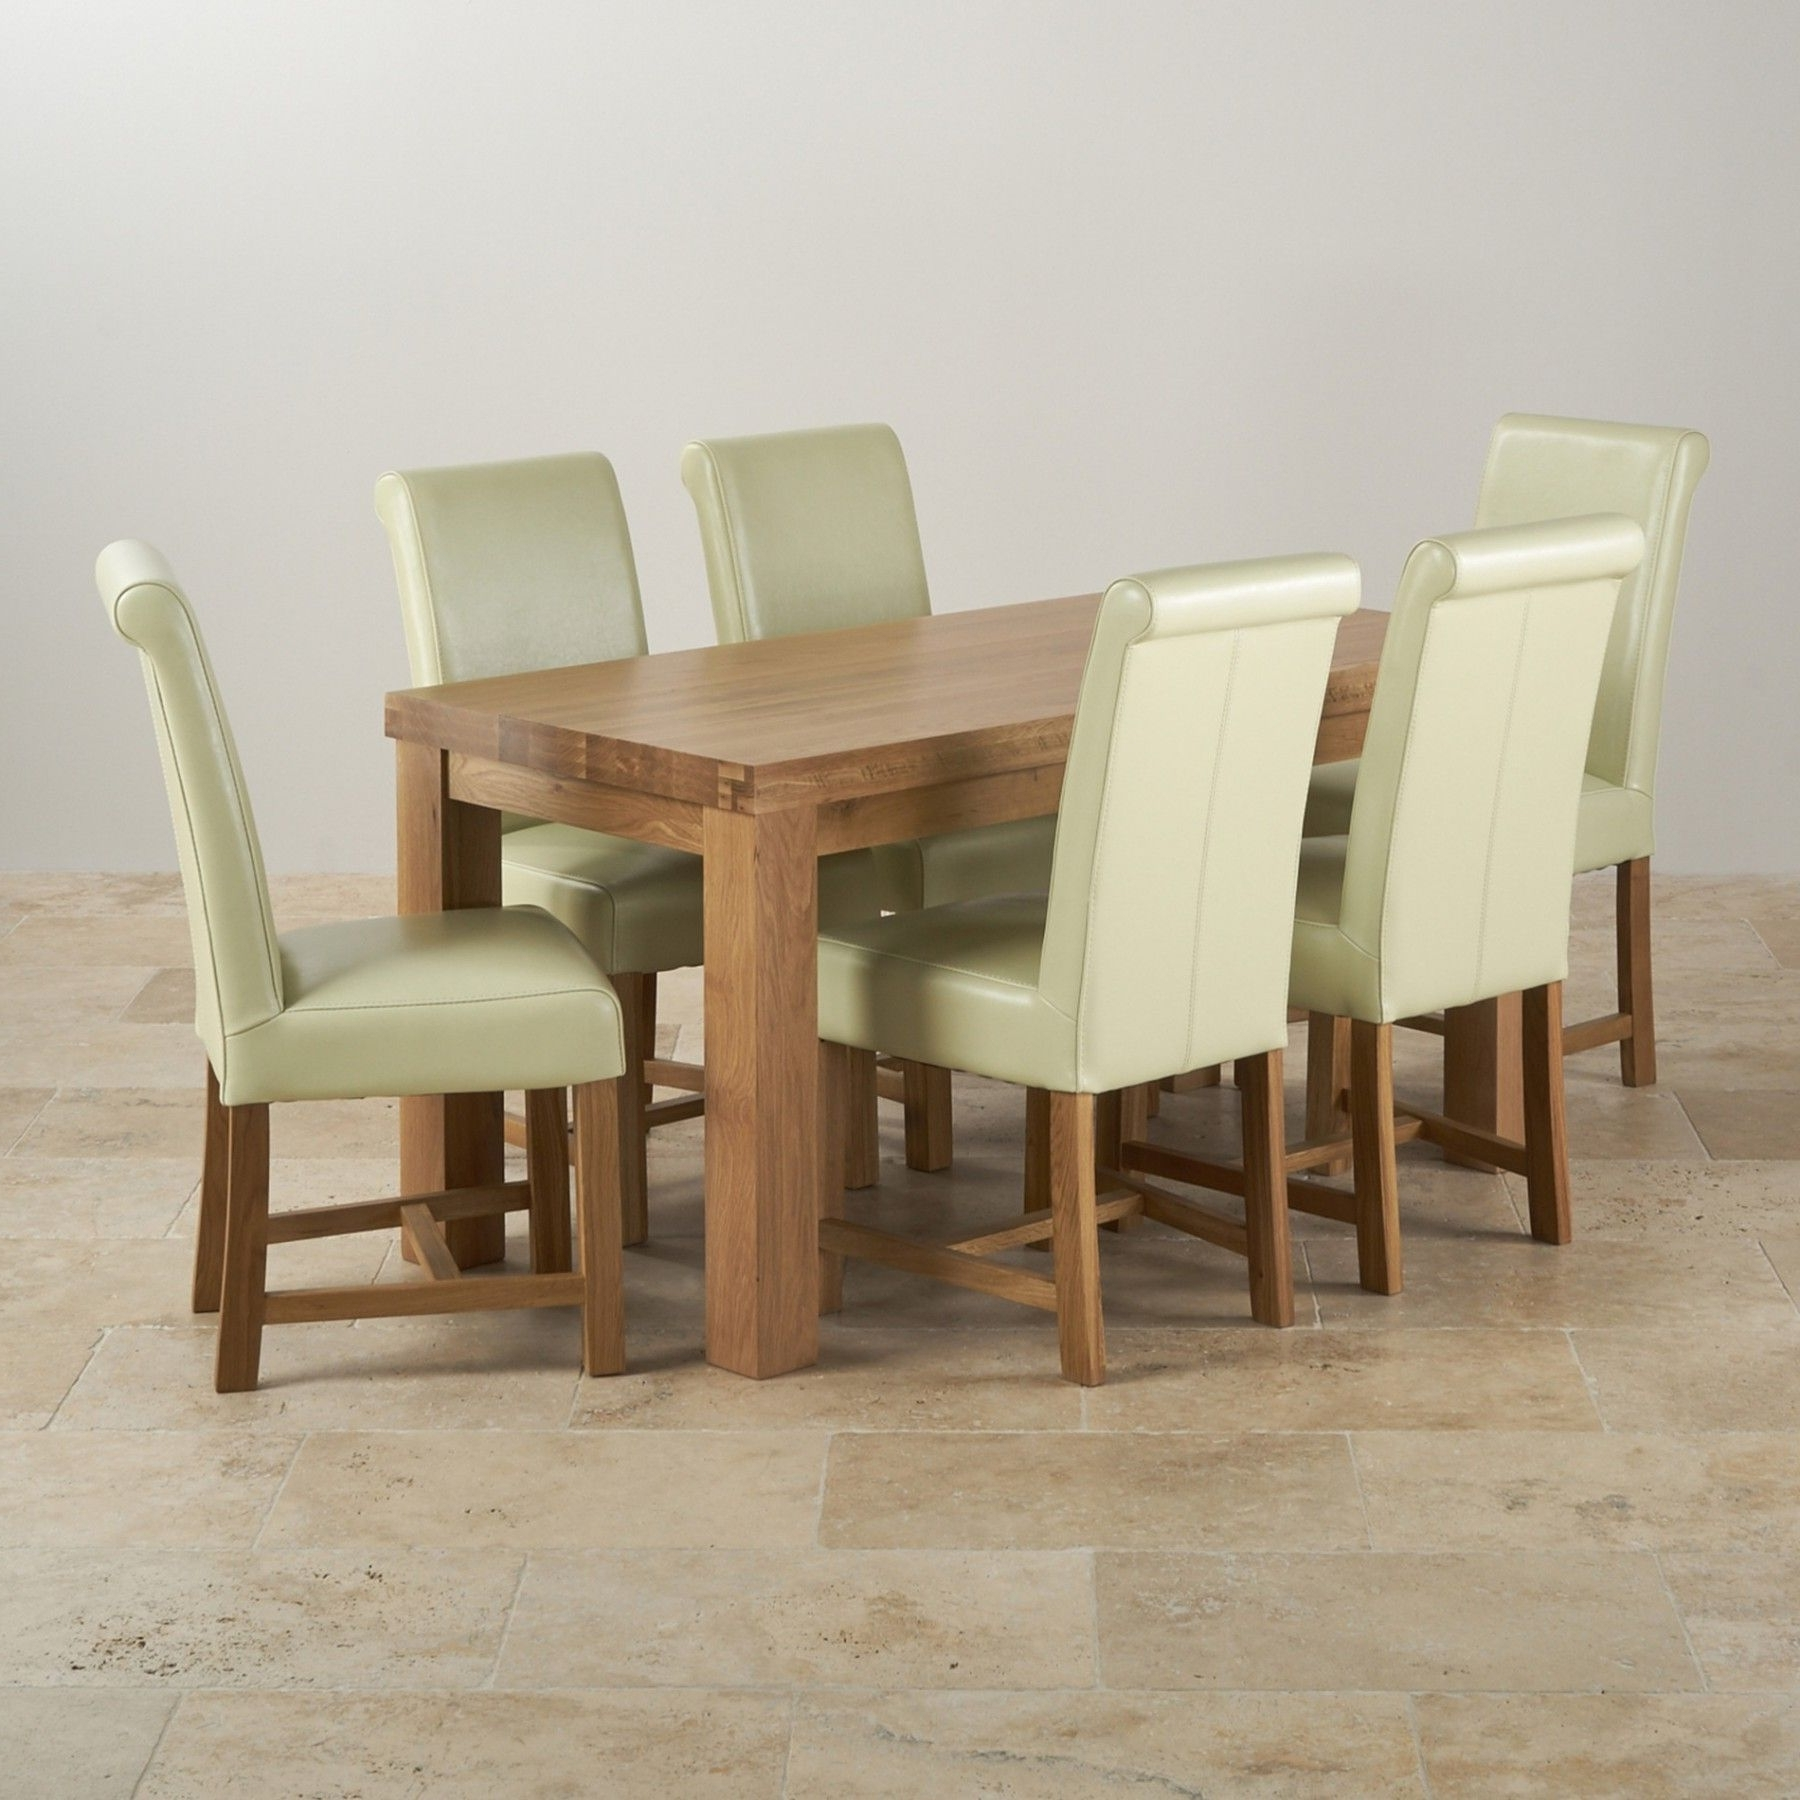 This Modern Dining Set Consists Of A Chunky 5Ft Dining Table And 6 With Regard To Trendy Cream And Oak Dining Tables (View 21 of 25)